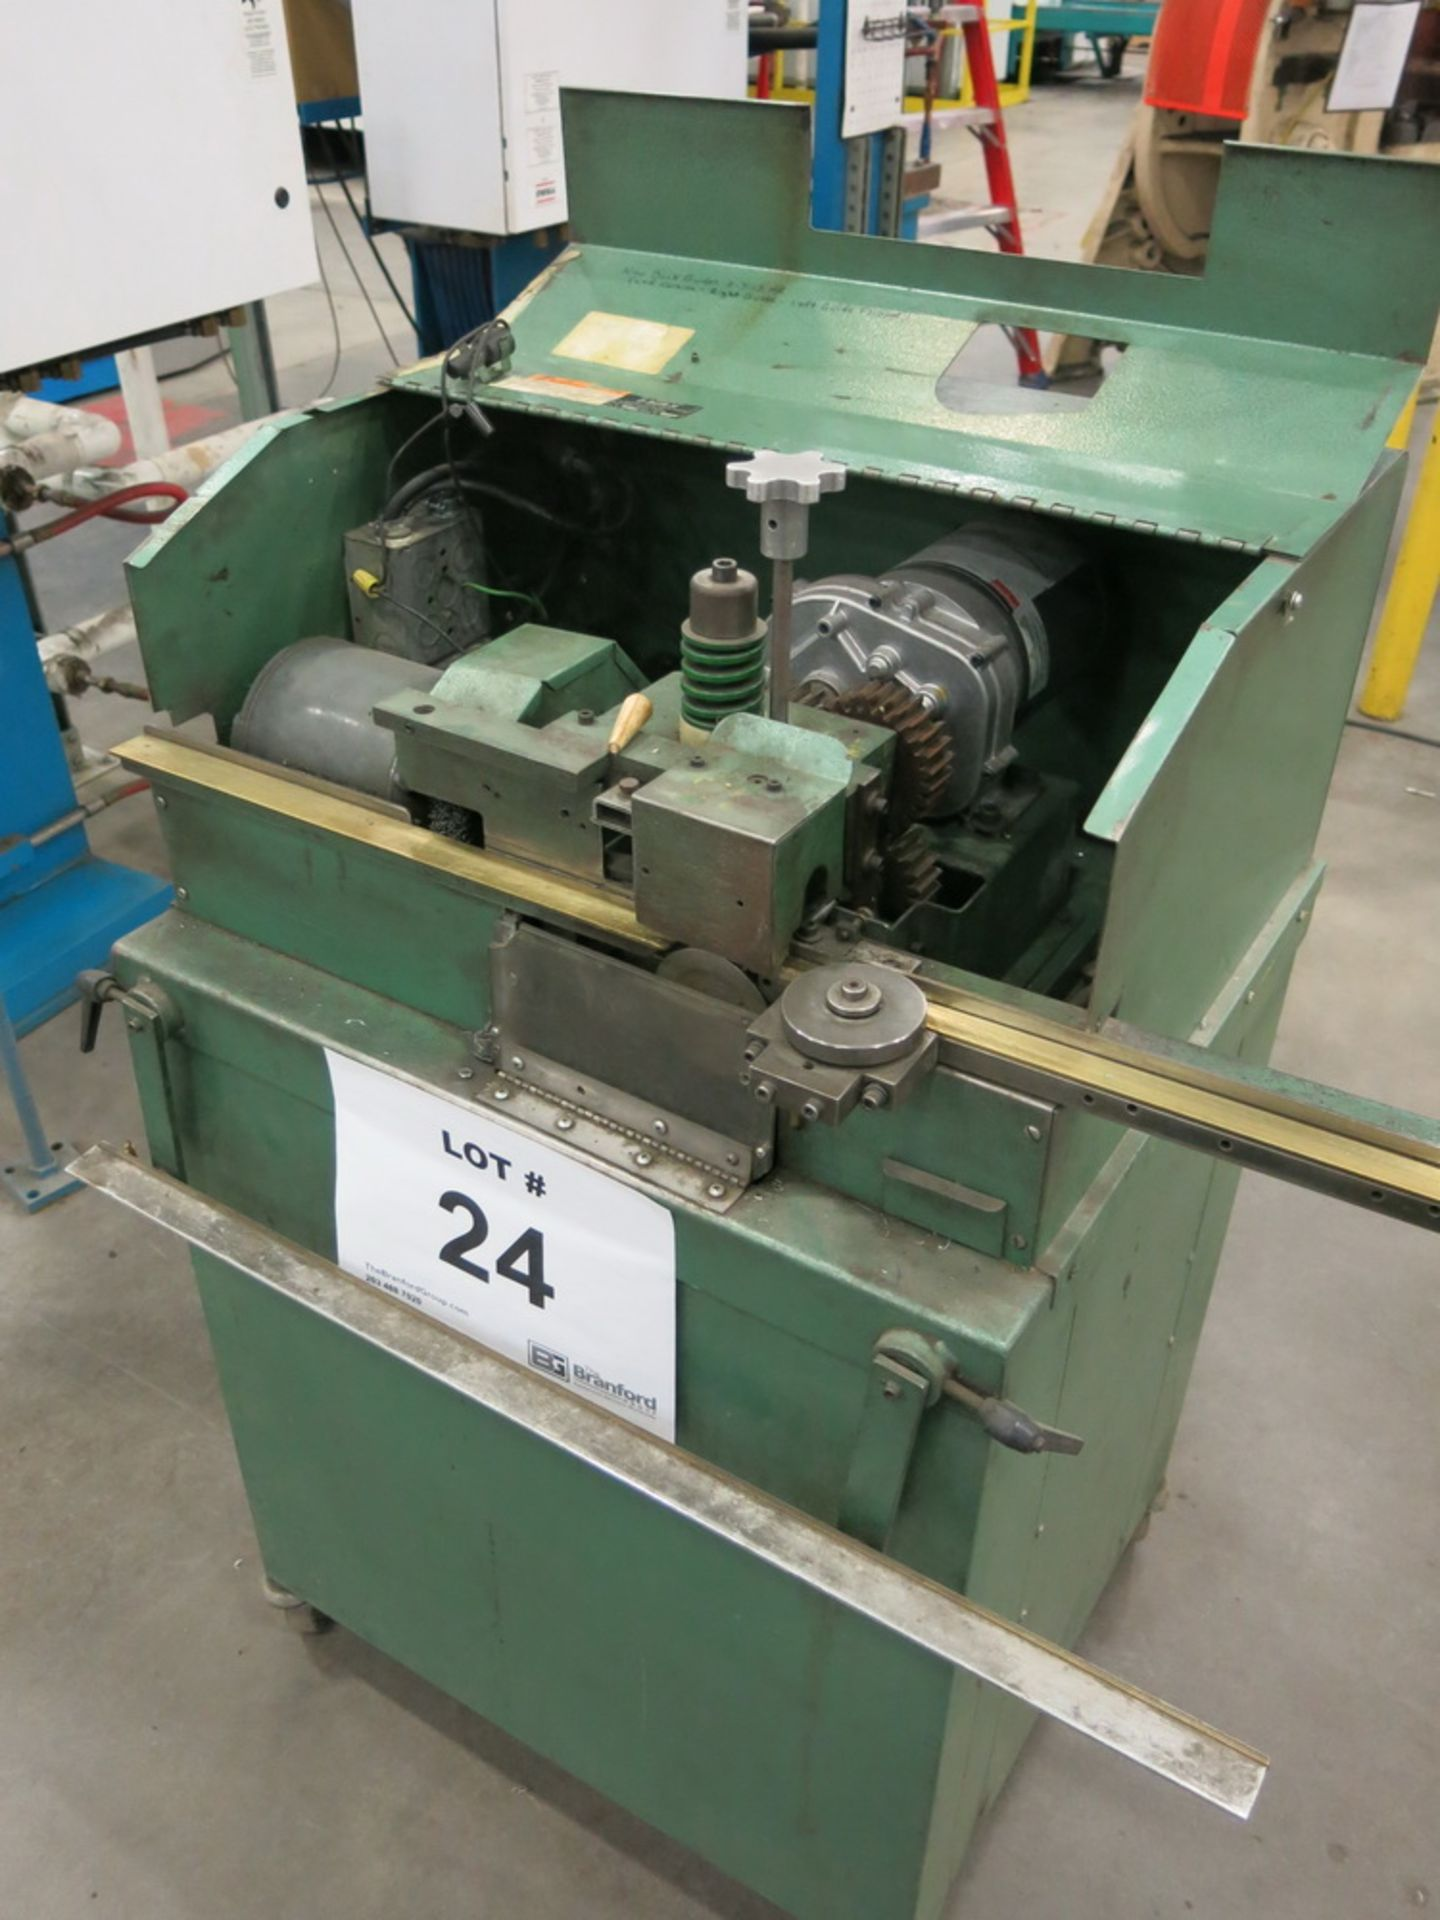 Lot 24 - Falls Products D-Bur-R Model 111 Deburrer